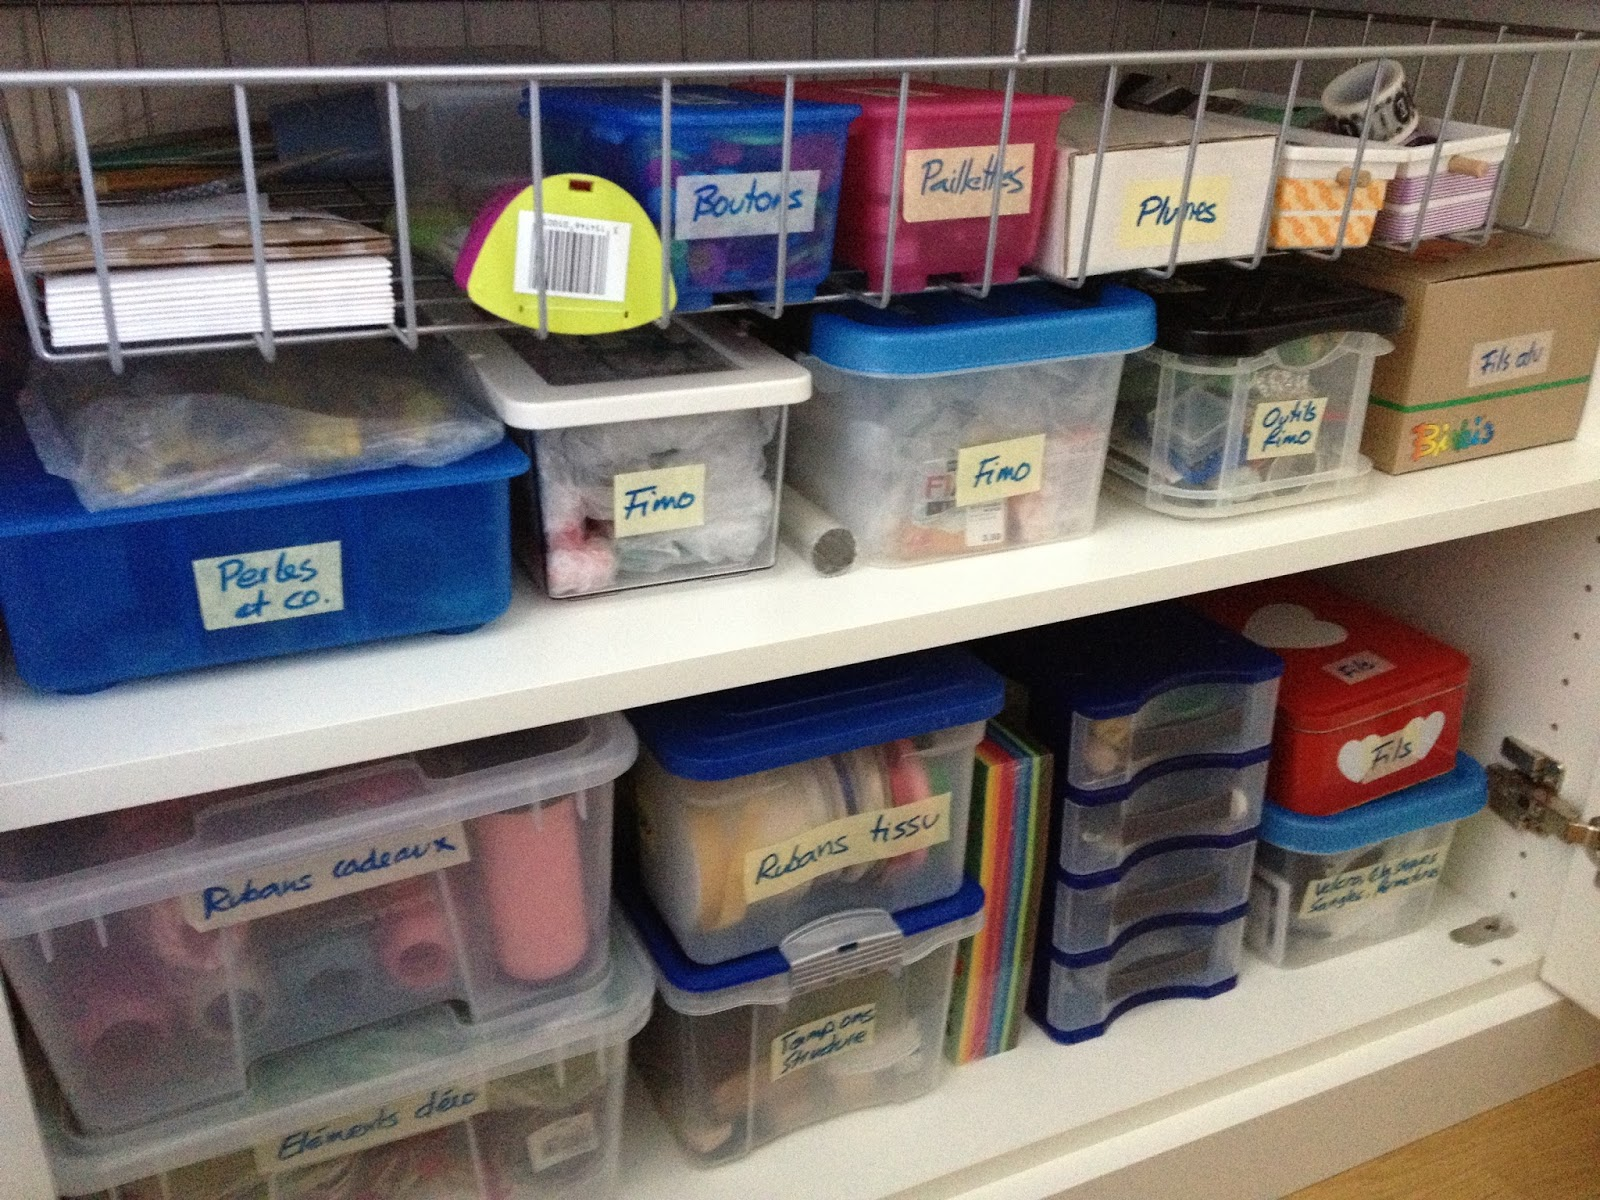 Comment organiser son atelier how to organize a craft room - Organiser son atelier de bricolage ...